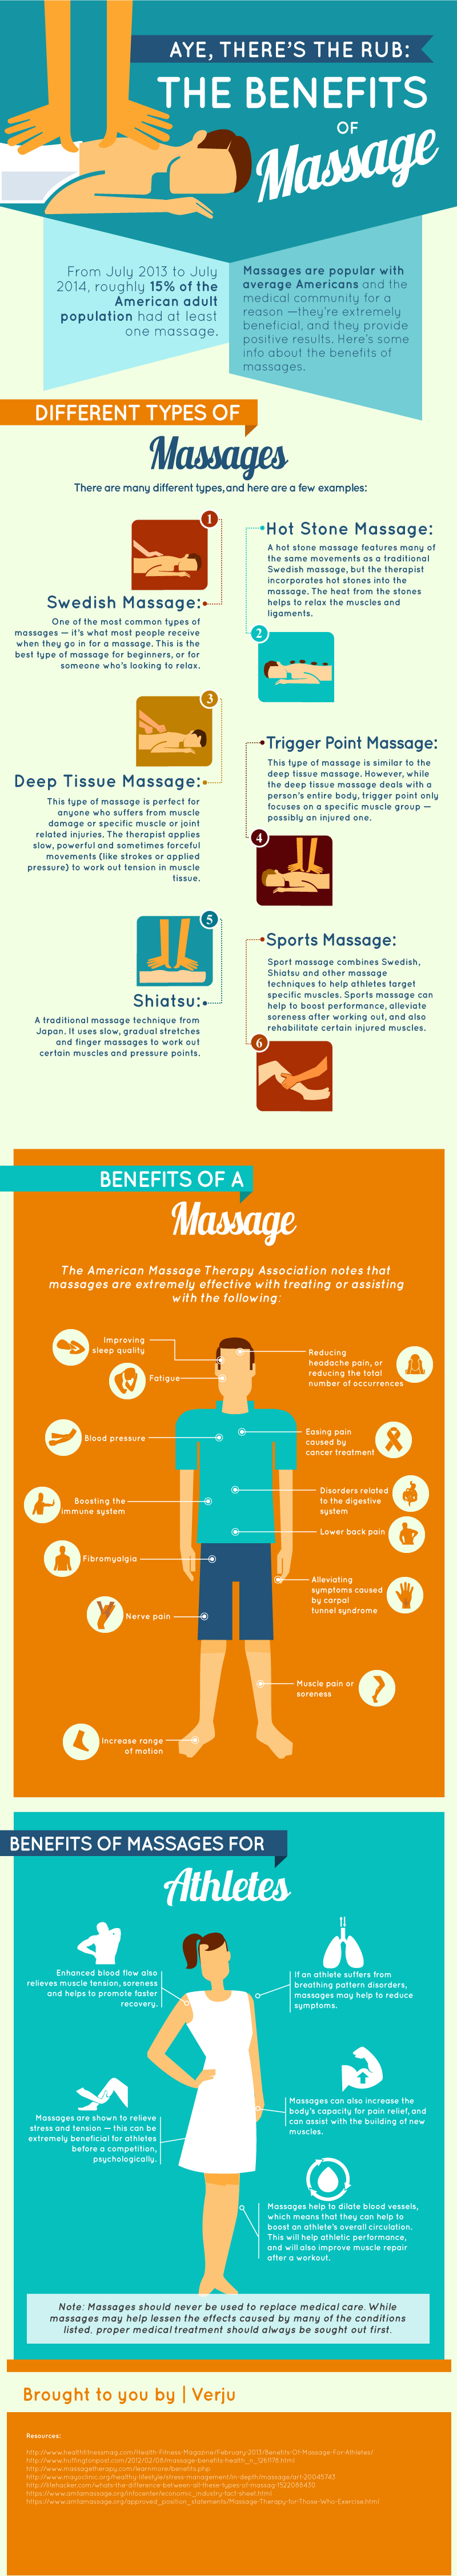 benefits of a massage infographic